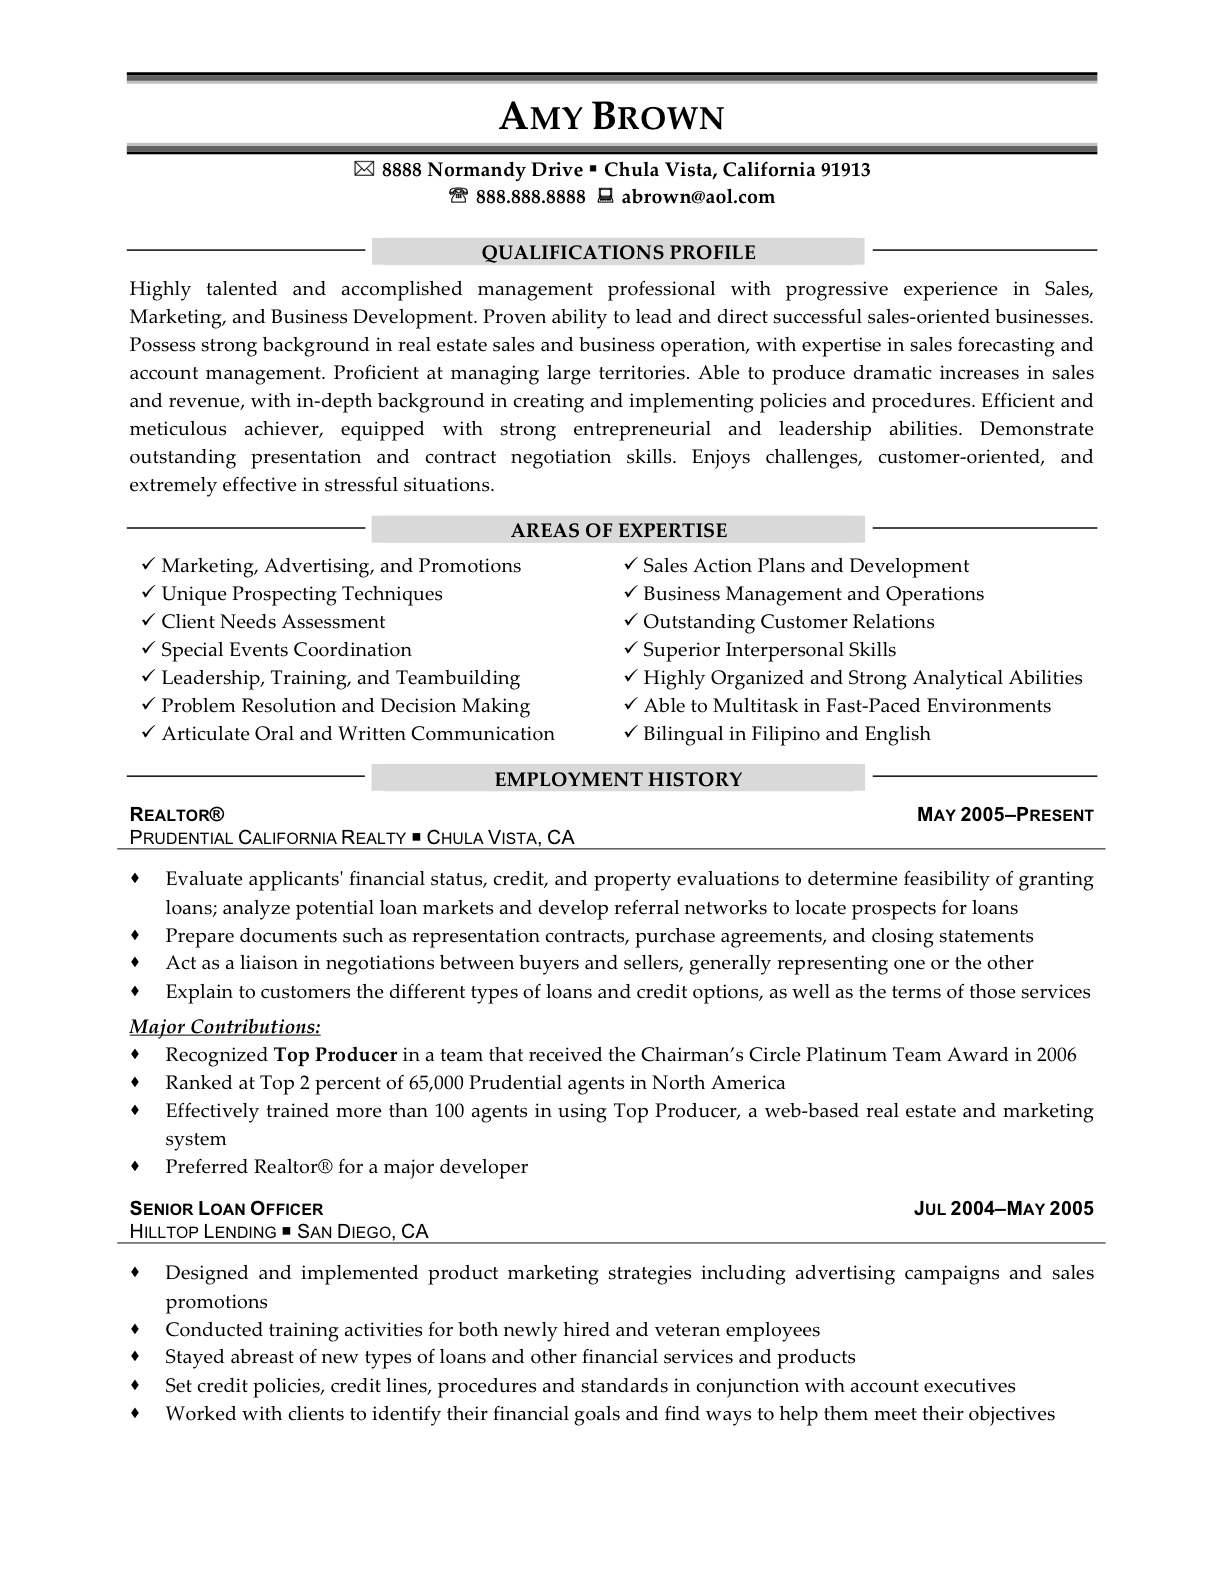 Sales Agent Cover Letter Images - Cover Letter Ideas